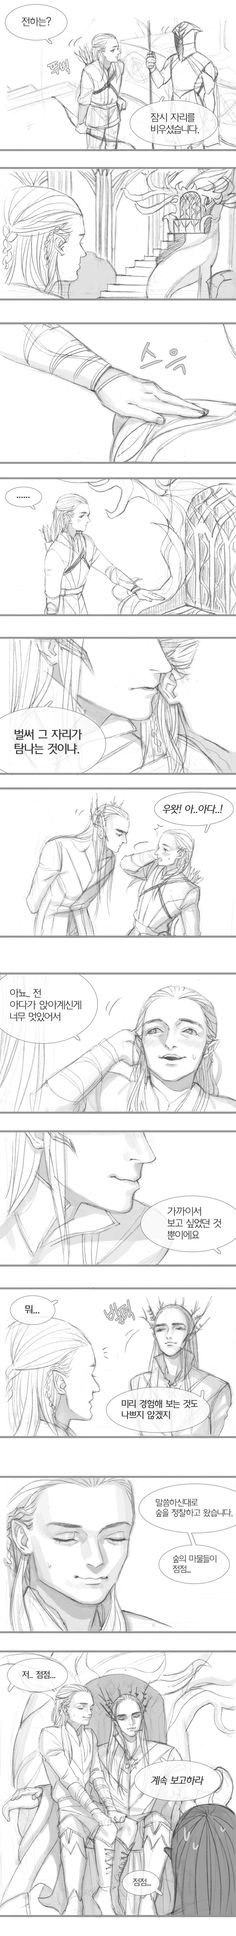 "Translation: Legolas enters and asks a guard, ""Where is the king?"" Guard: ""He has stepped out for a minute."" As Legolas touches the throne, Thranduil is suddenly there and says, ""Already coveting the throne?"" Nervous Legolas states, ""Ada! No. I just...thought how magnificent you look when you are sitting on it. I just wanted to see it close."" Thranduil replies, ""I guess...it won't hurt to experience it beforehand."" In the next scene, the bubble next to Legolas is spoken by a guard reporting…"